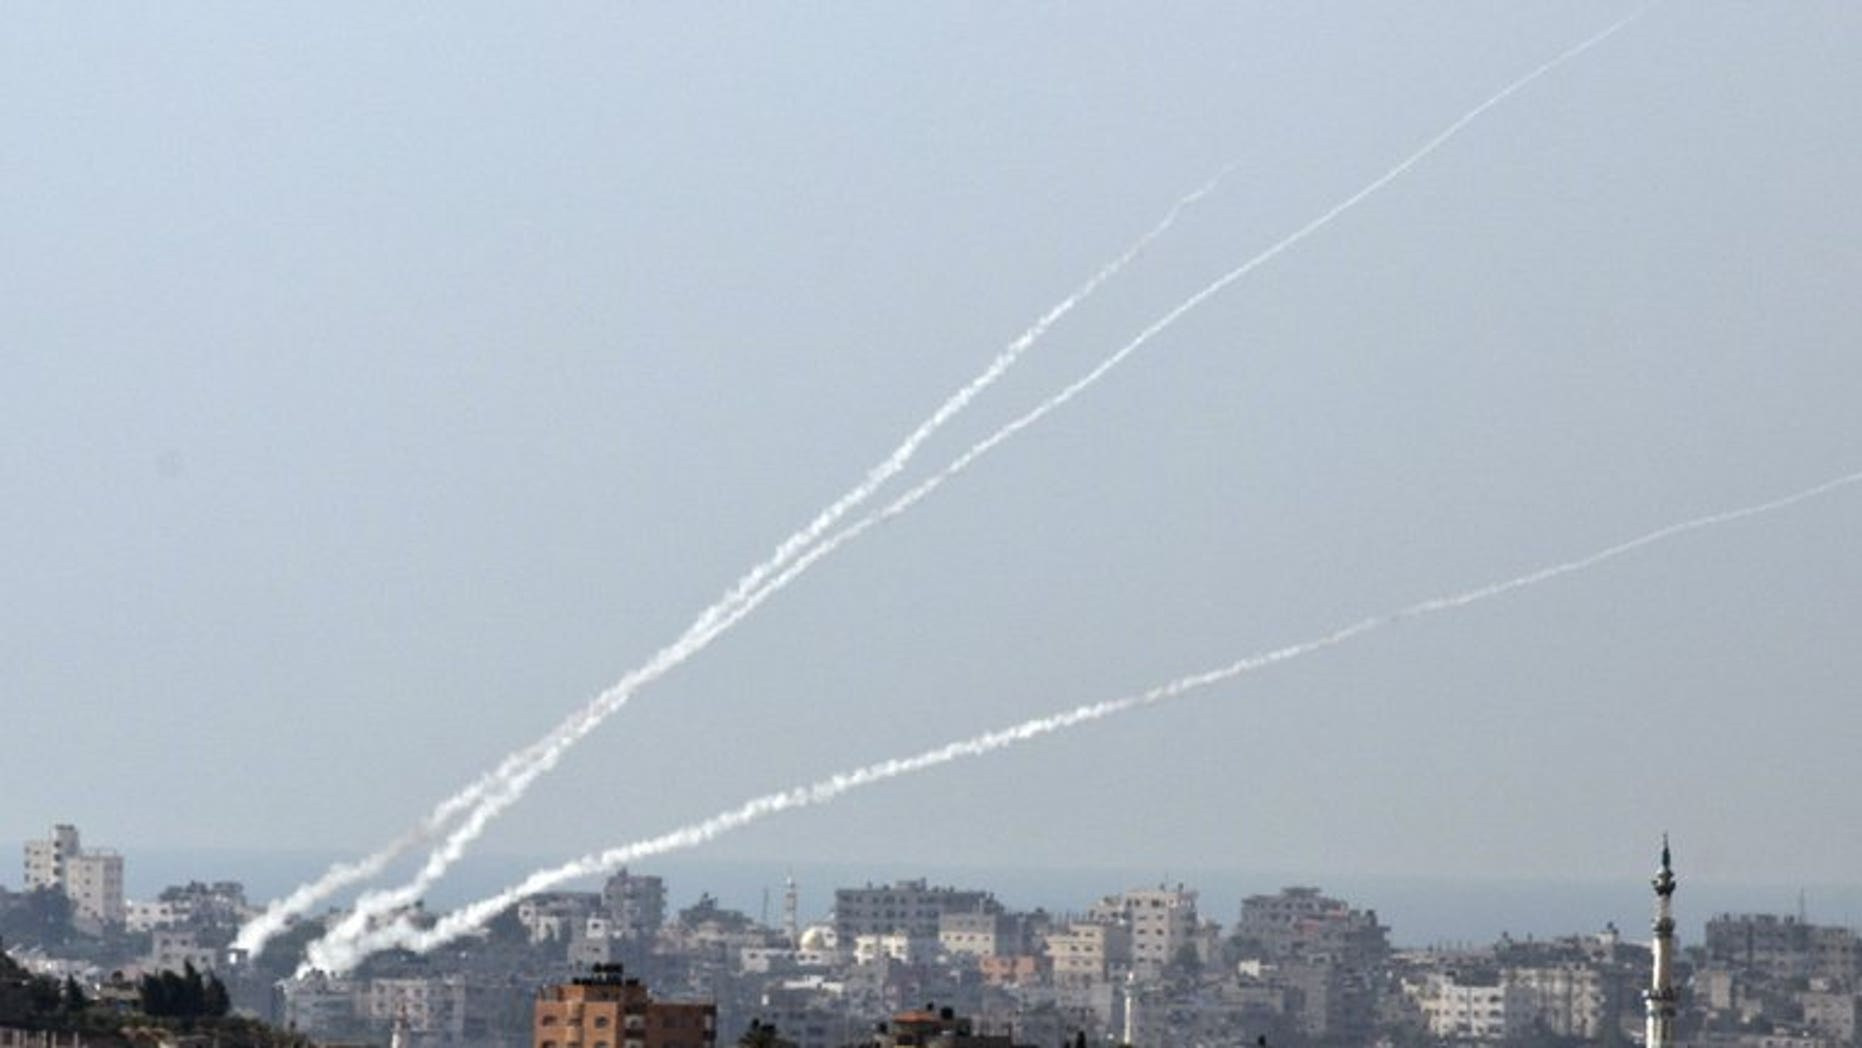 File picture shows a trail of smoke from rockets launched from the Palestinian Gaza Strip towards southern Israel on October 24, 2012. A rocket fired from Gaza hit southern Israel Tuesday, causing no casualties, a police spokesman said, as a first full day of resumed Middle East peace talks was to open.